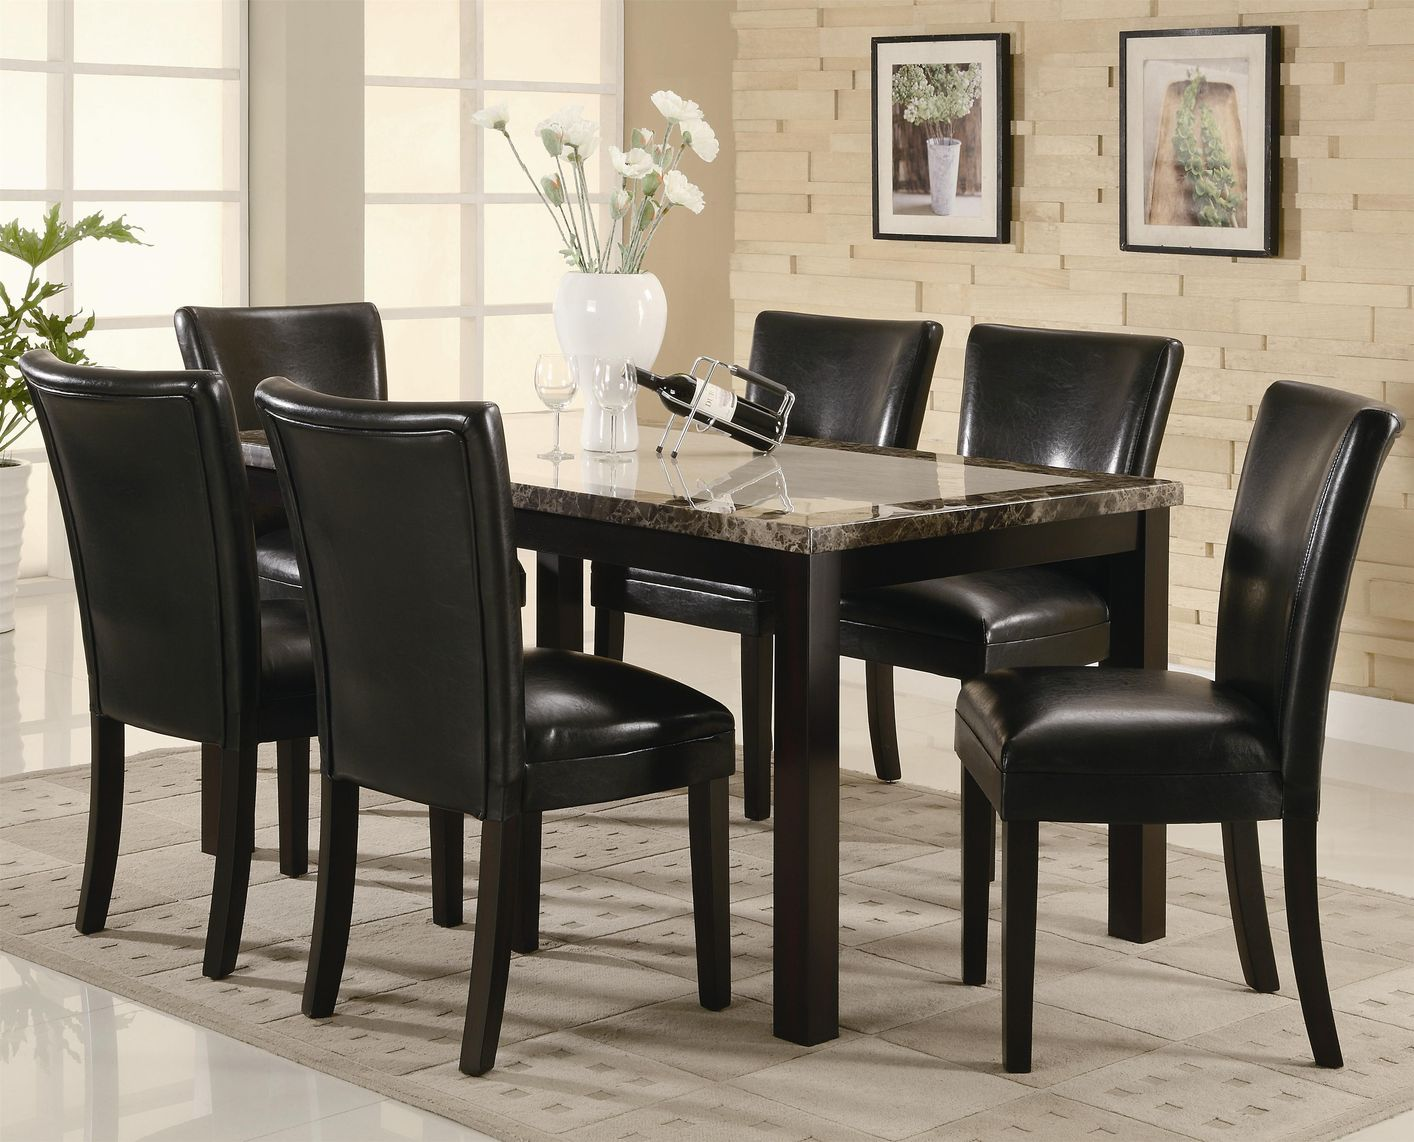 Superb img of Dining Table Corner Dining Table Set Dining Table Collection  with #535916 color and 1414x1142 pixels